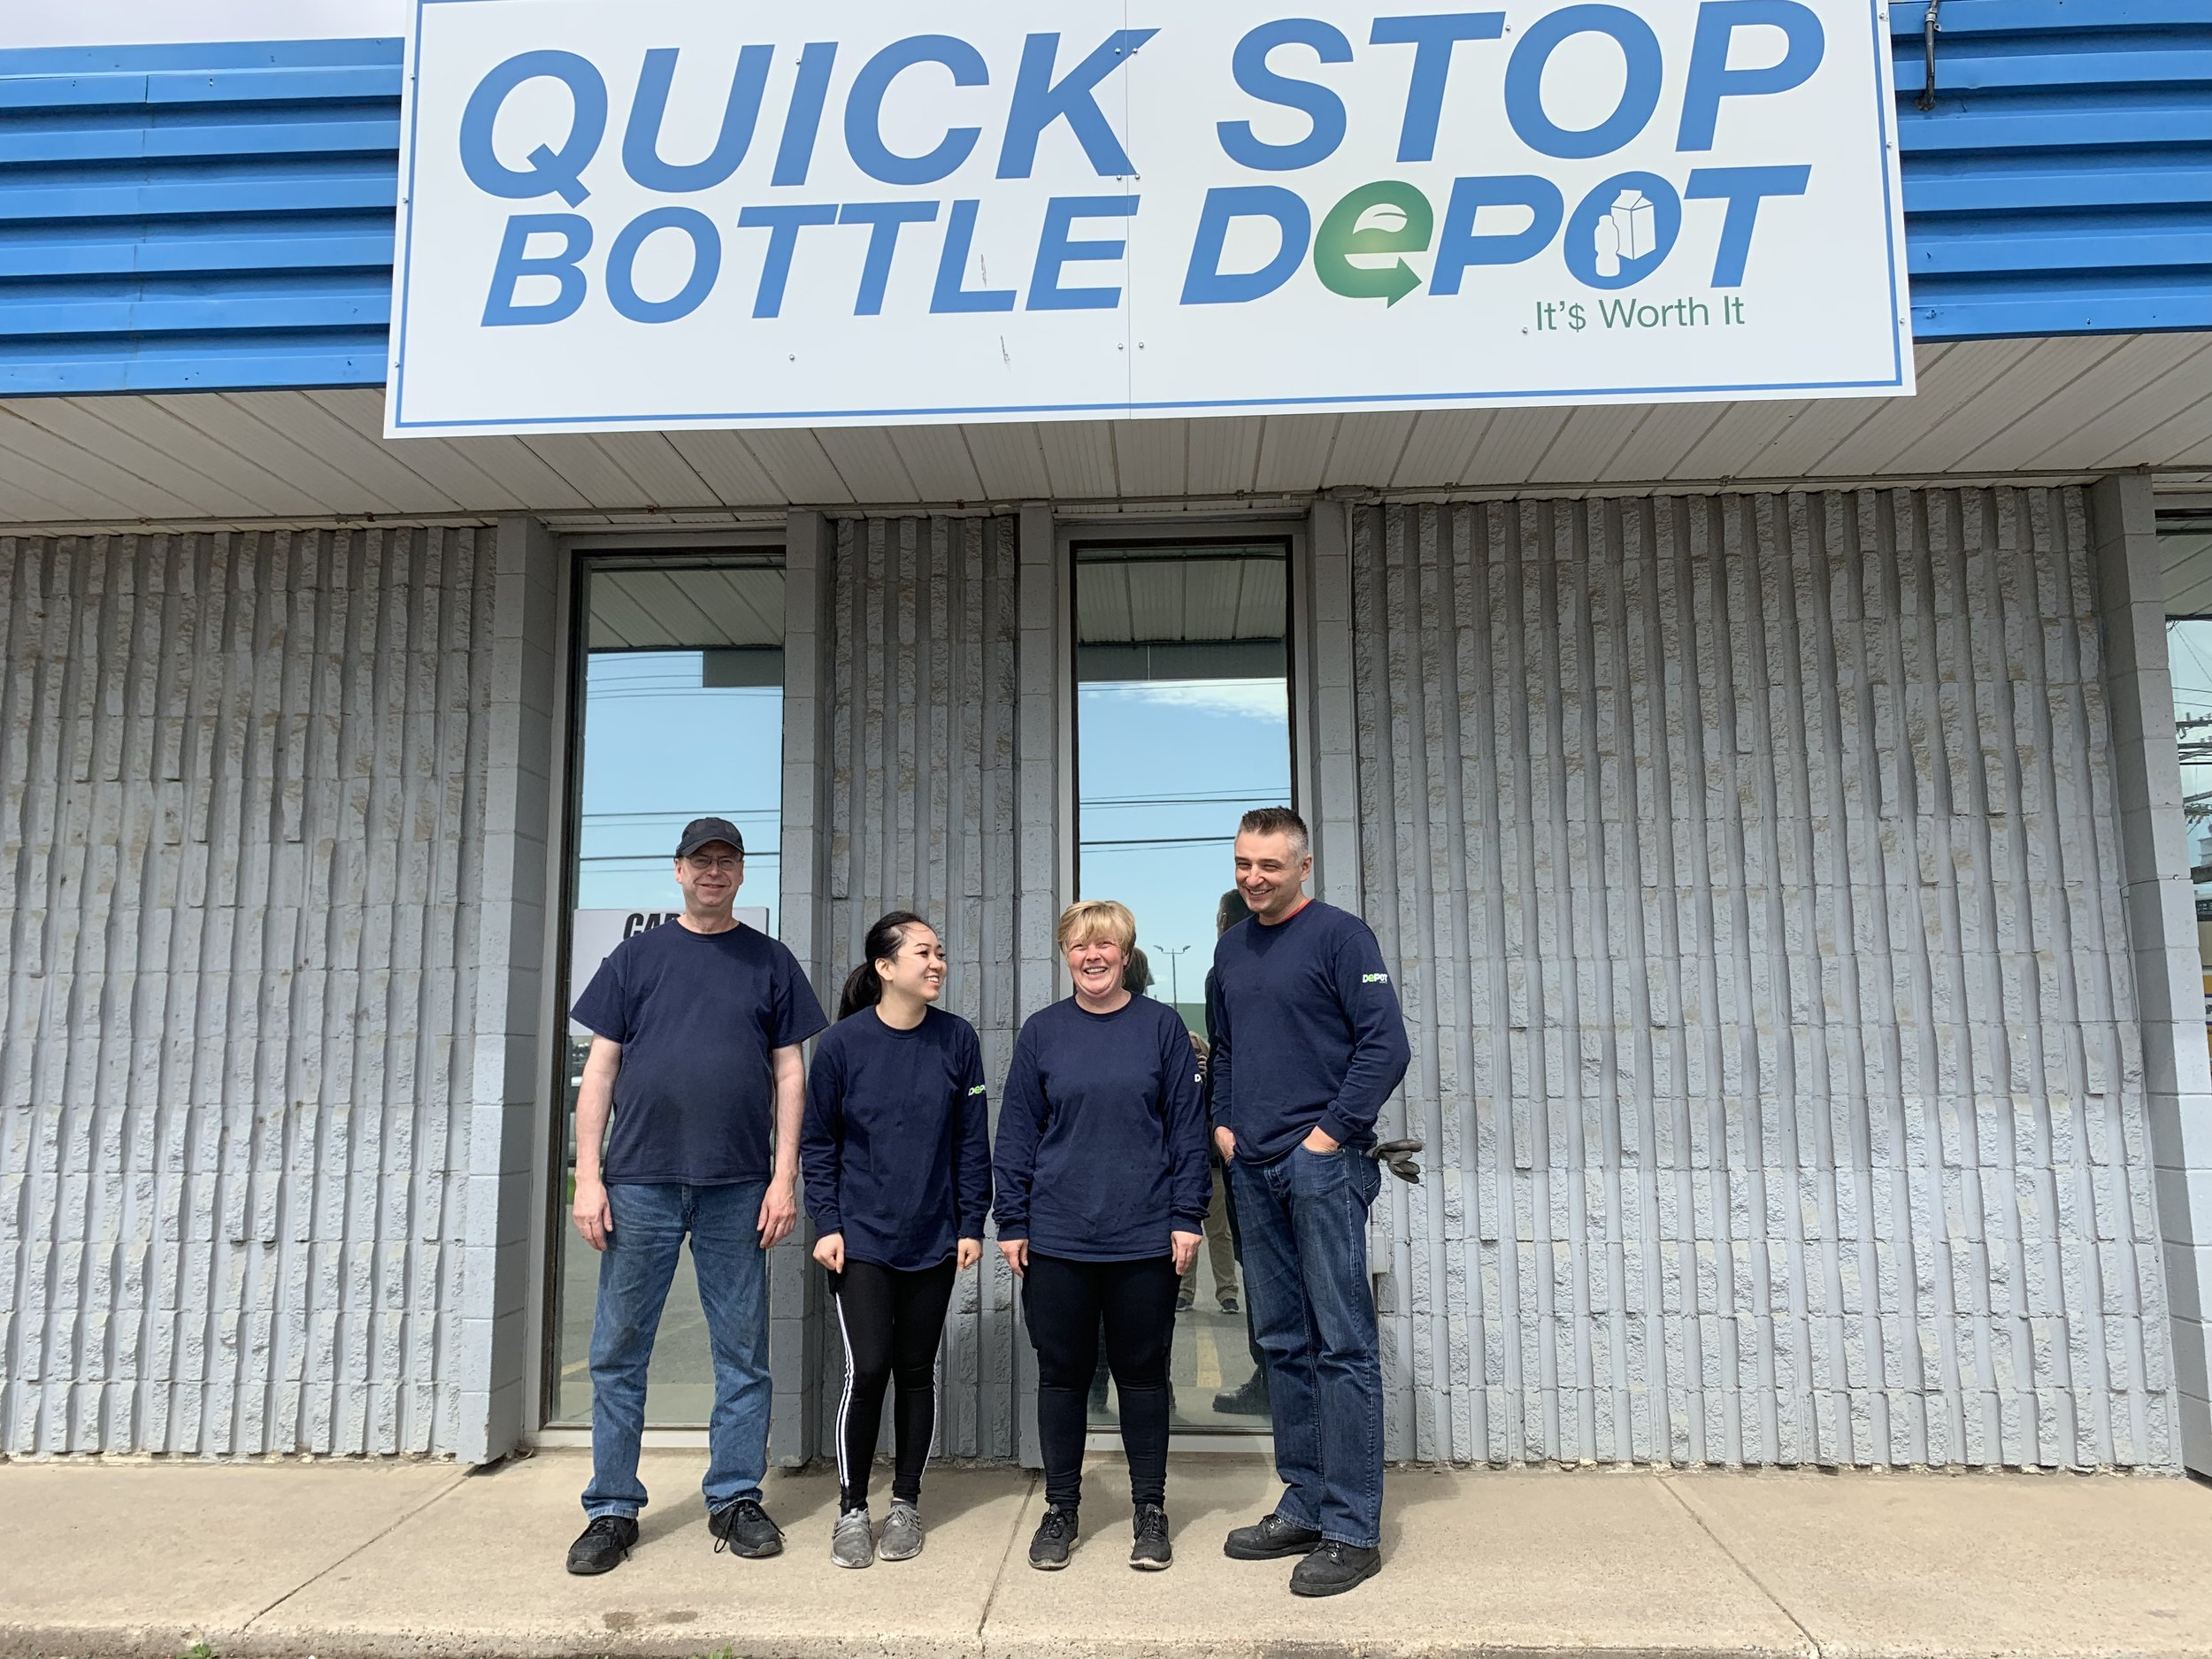 Quick Stop Bottle Depot (Edmonton)